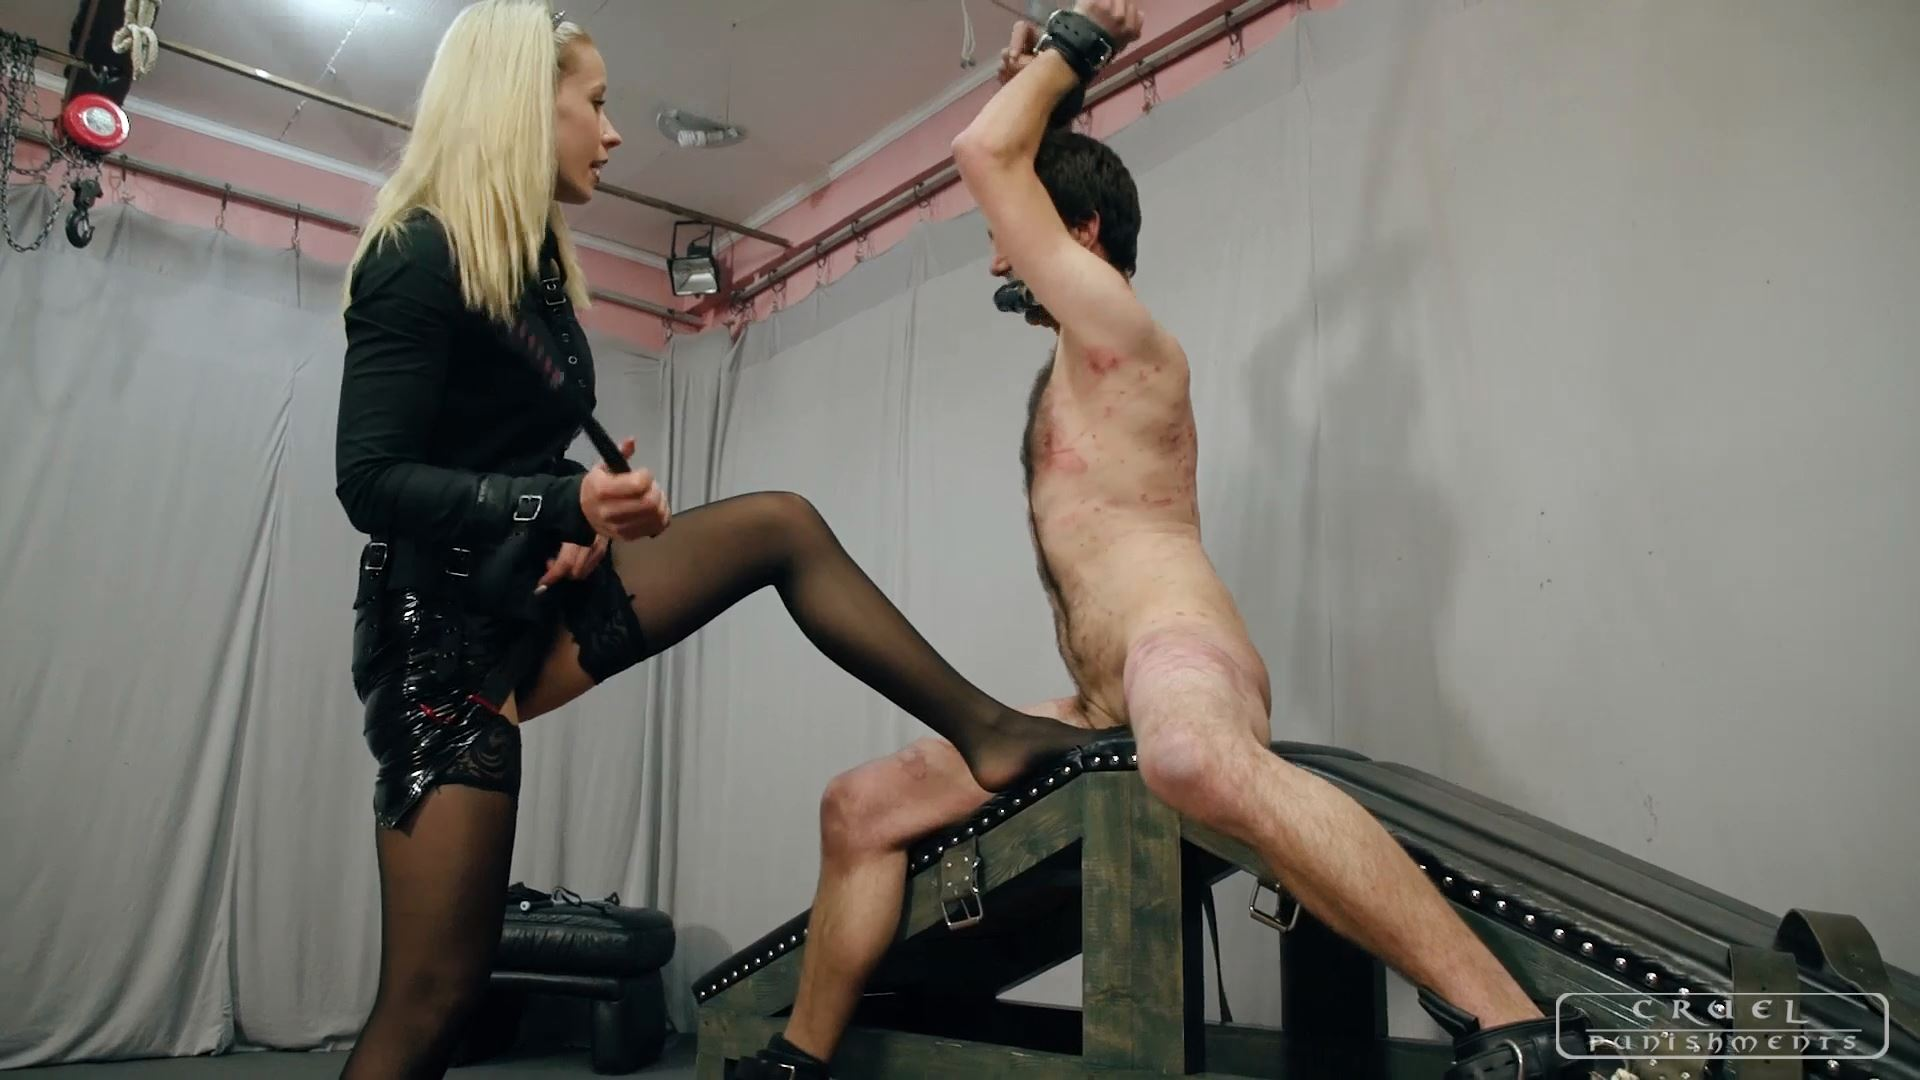 Mistress Anette In Scene: Body full of marks part - CRUEL PUNISHMENTS - SEVERE FEMDOM - FULL HD/1080p/MP4